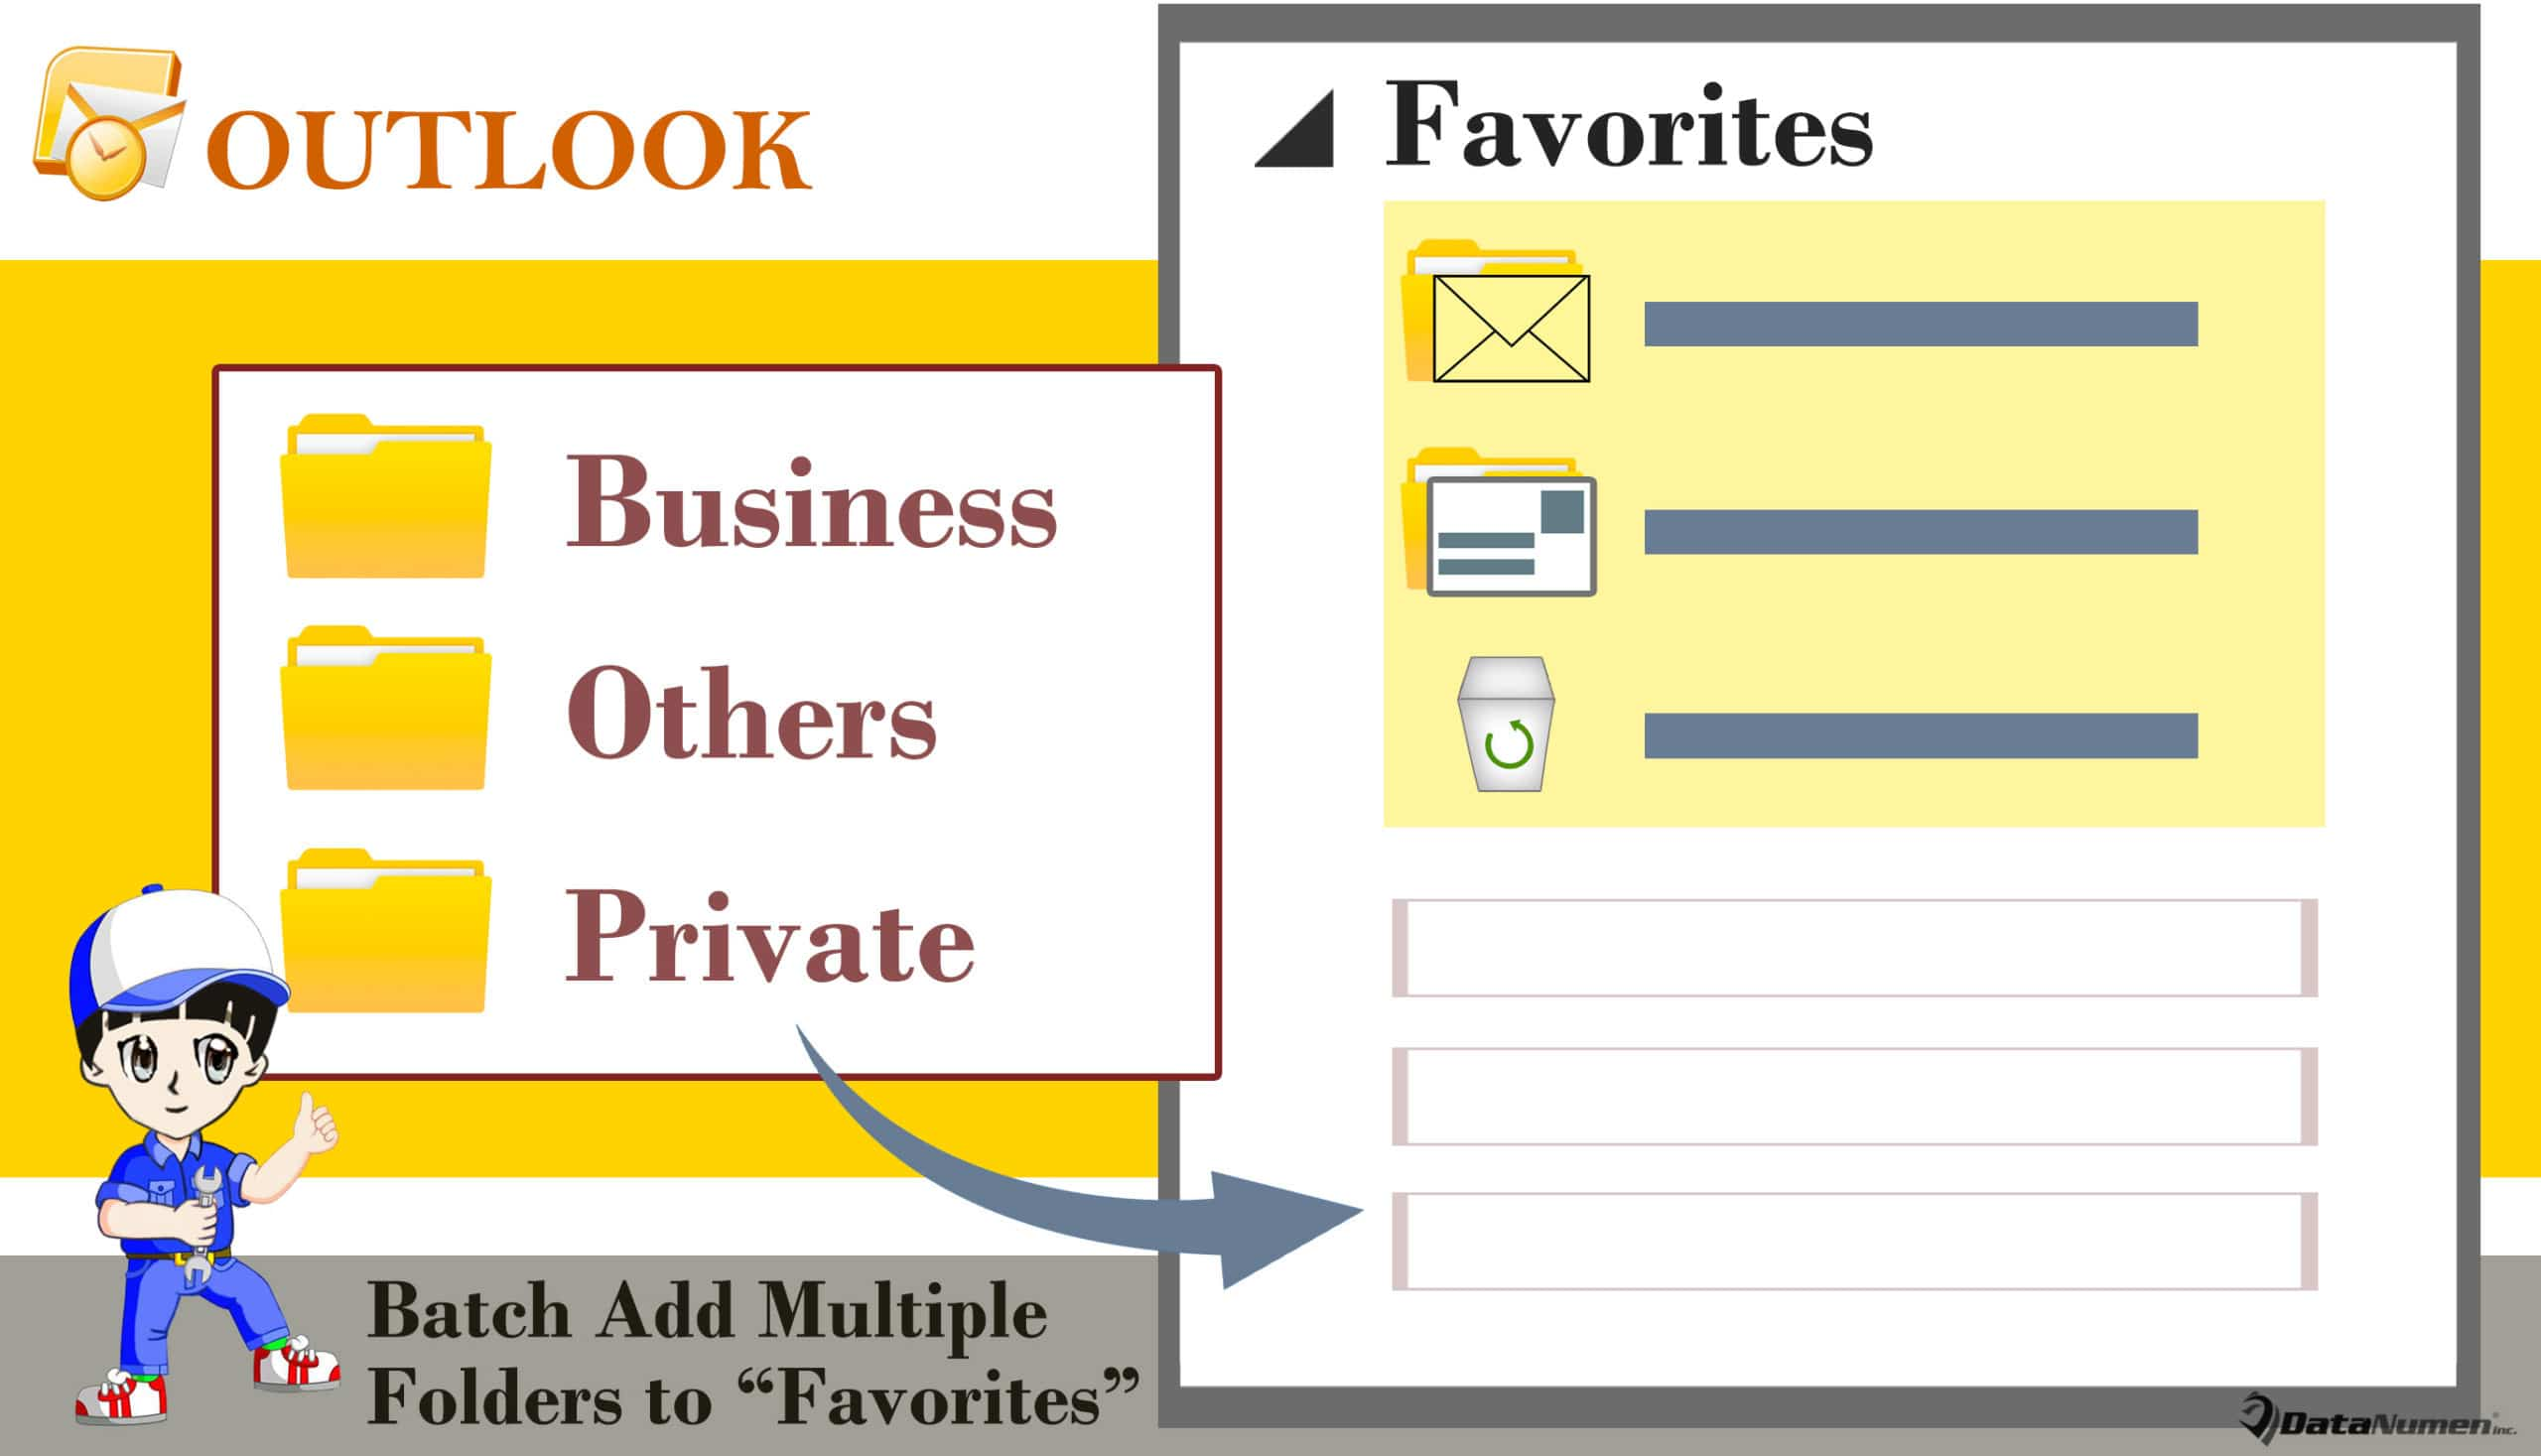 "Batch Add Multiple Folders to ""Favorites"" Section in Your Outlook"